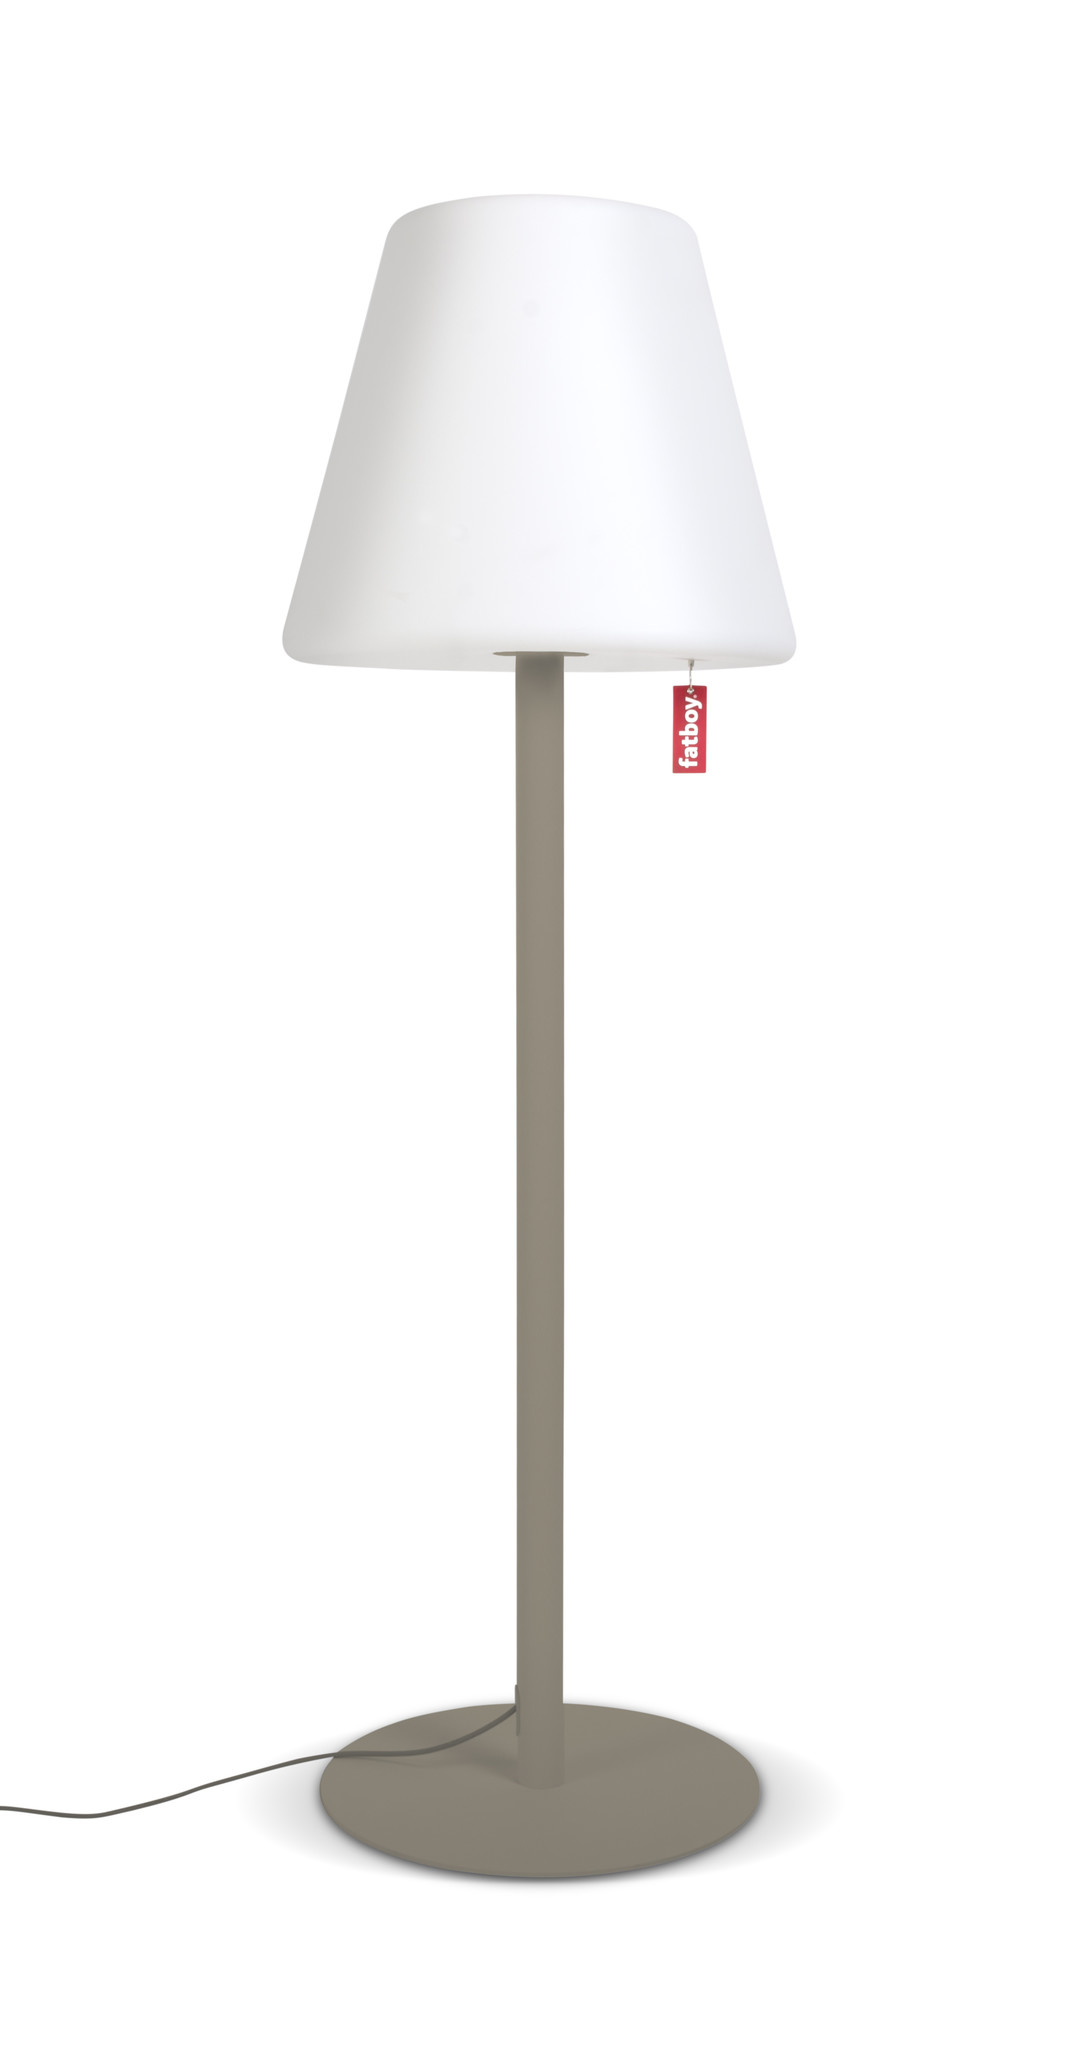 Fatboy Vloerlamp Edison the Giant taupe